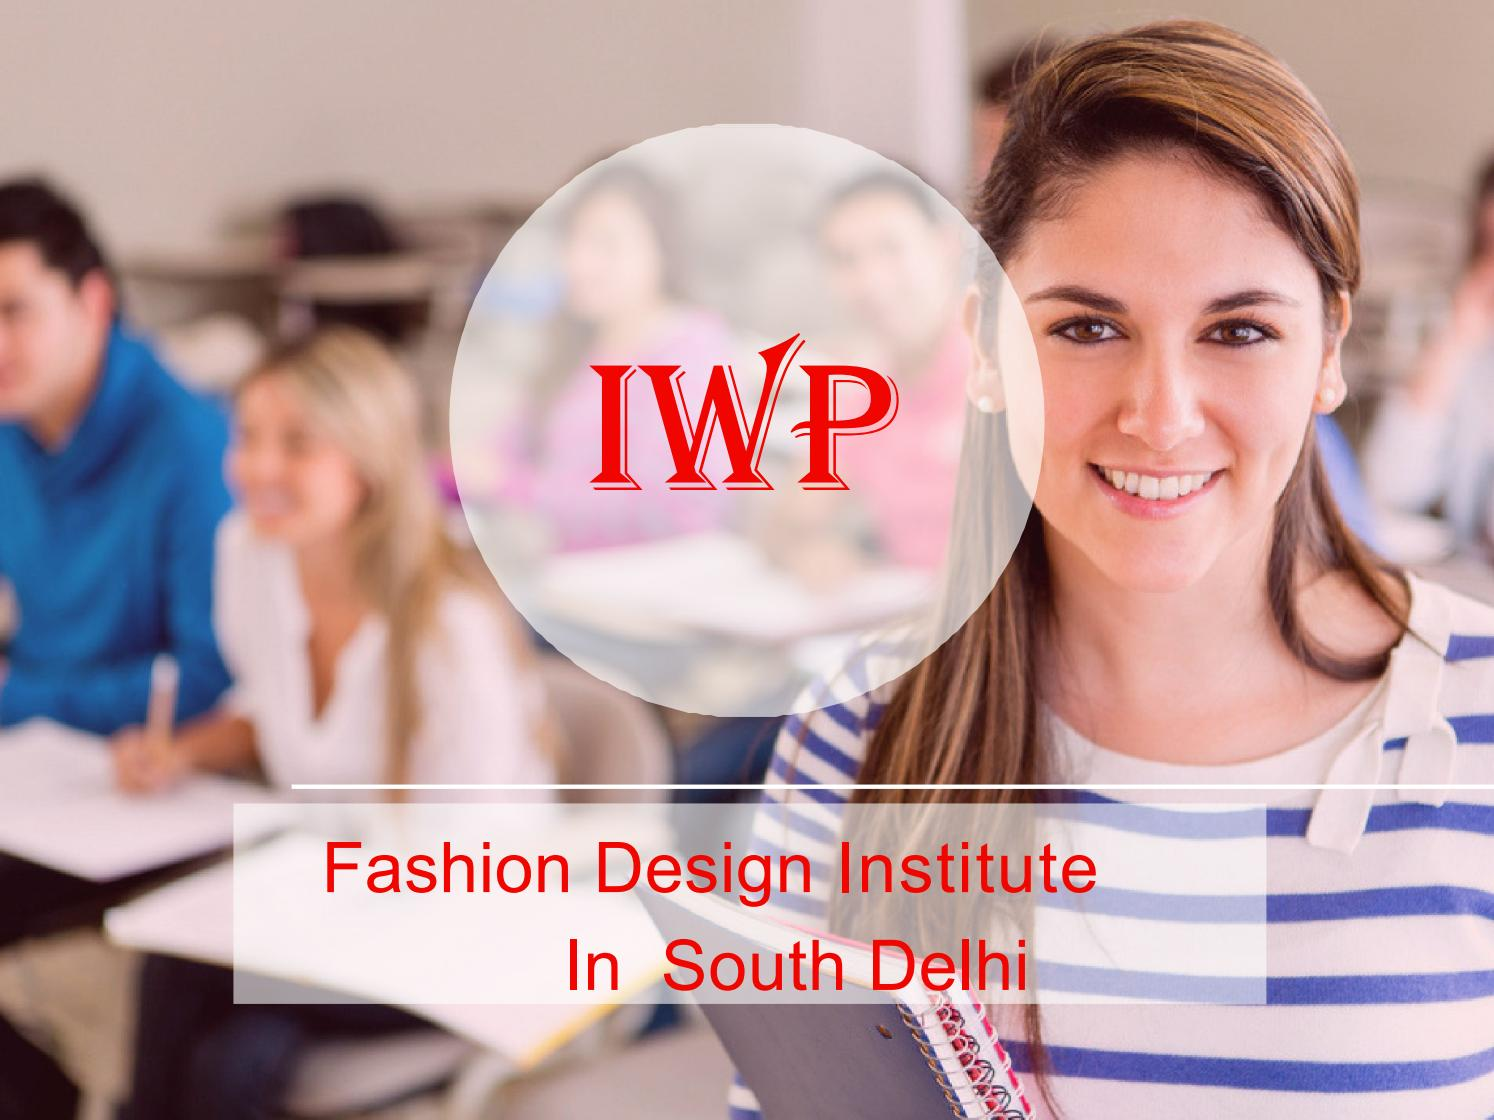 Fashion Design Institute In South Delhi By Johnsmith Issuu